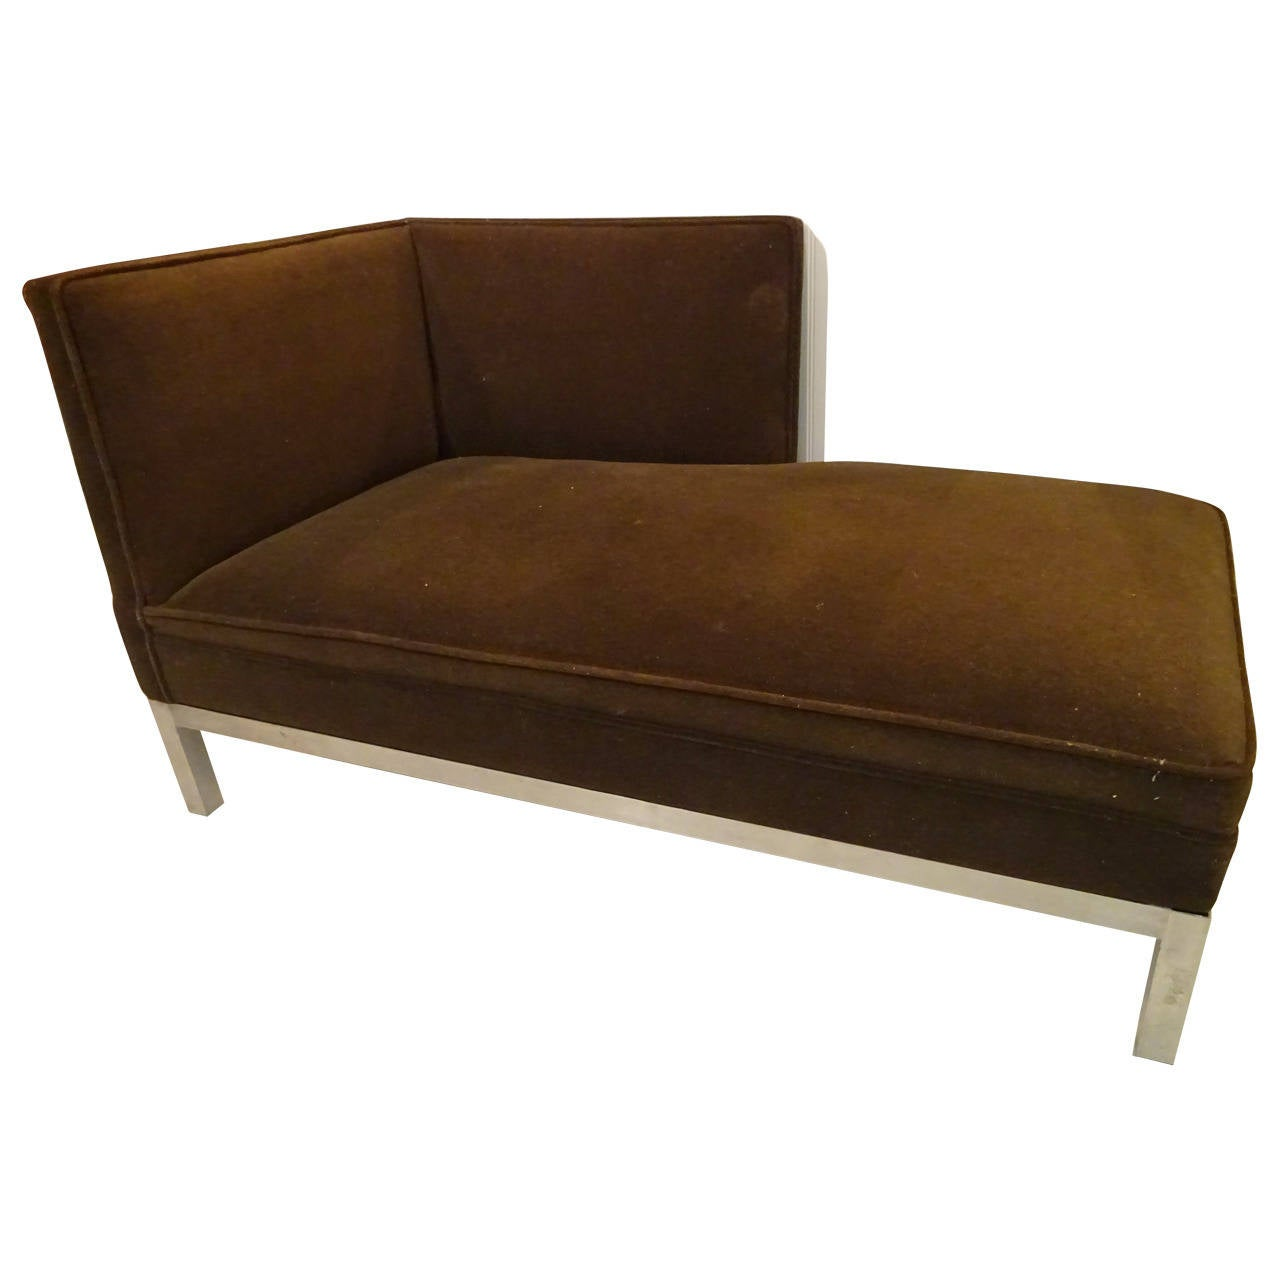 Mid century chaise longue at 1stdibs for Chaise longue furniture